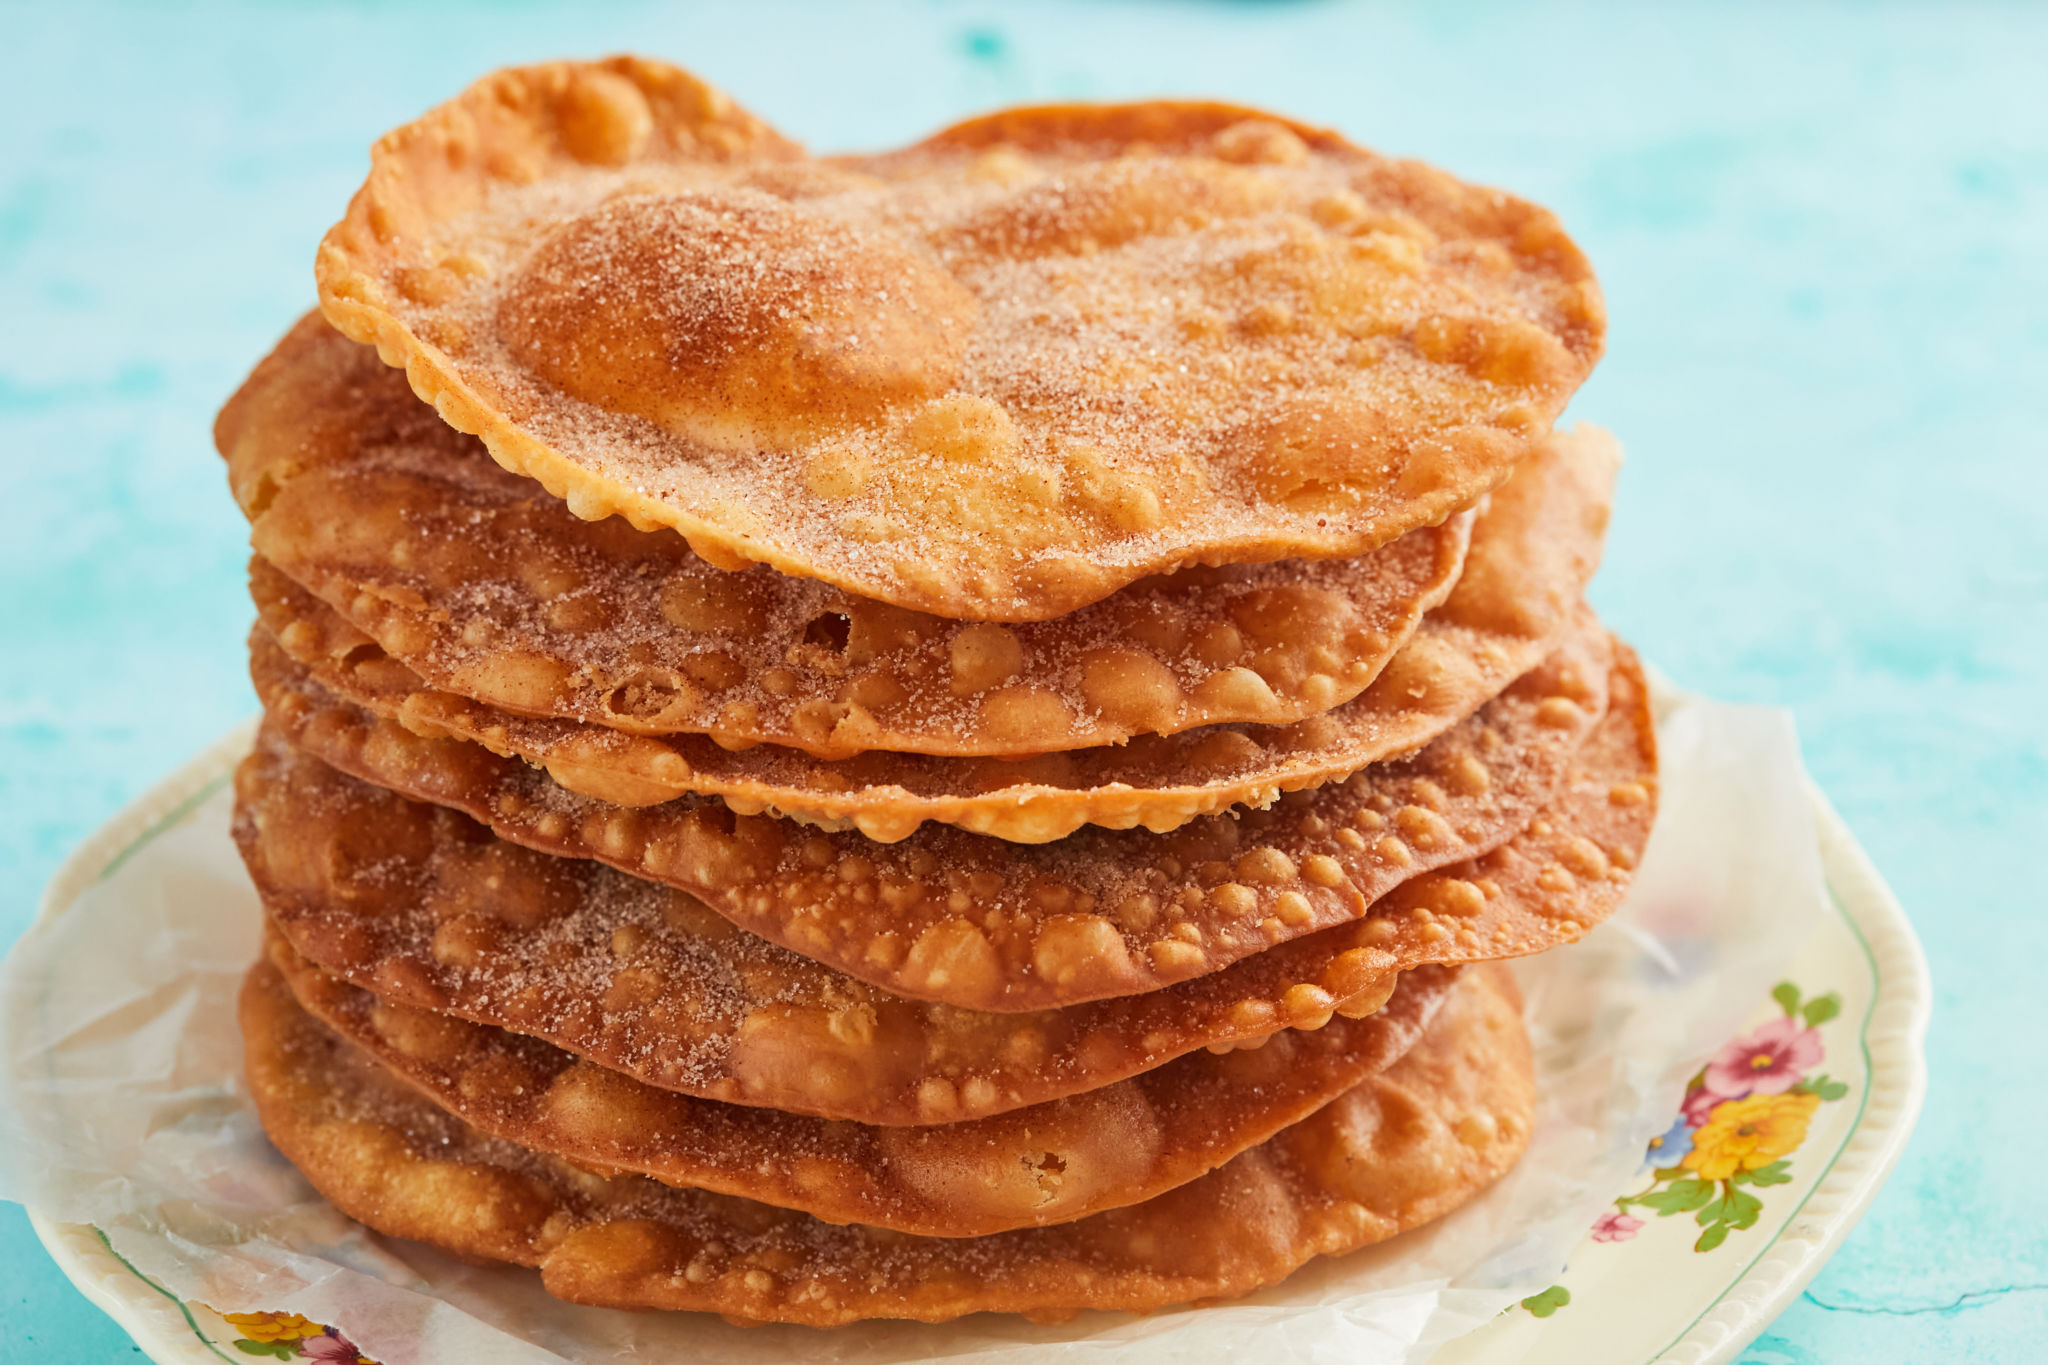 A gorgeous stack of Mexican buñuelos.